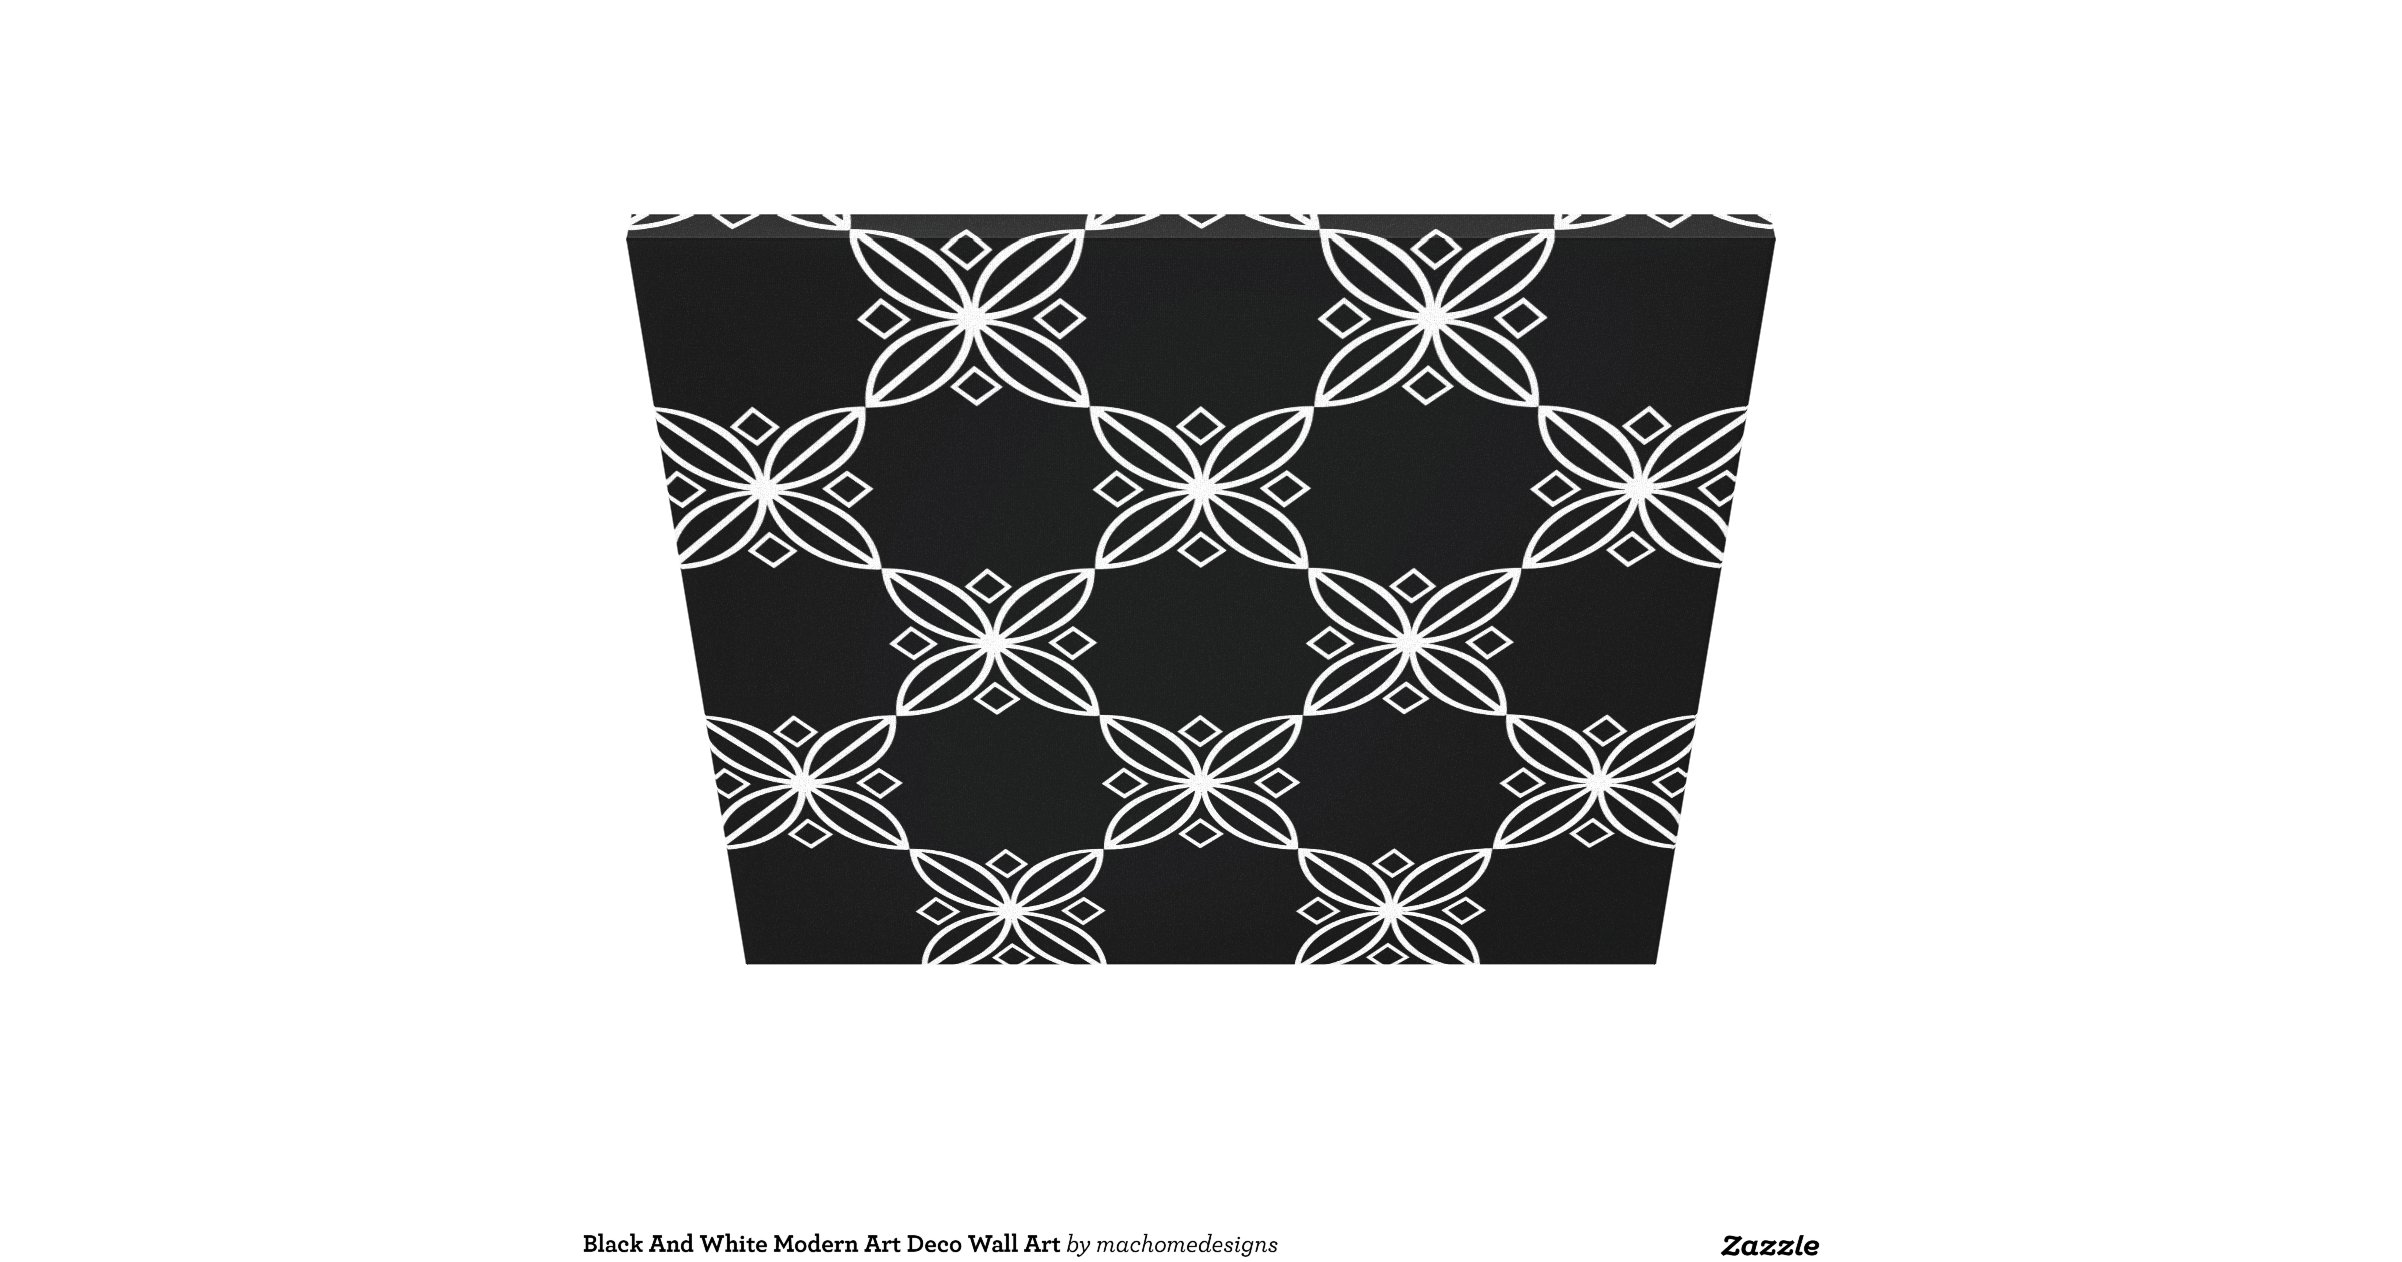 black and white modern art deco wall art canvas print zazzle. Black Bedroom Furniture Sets. Home Design Ideas